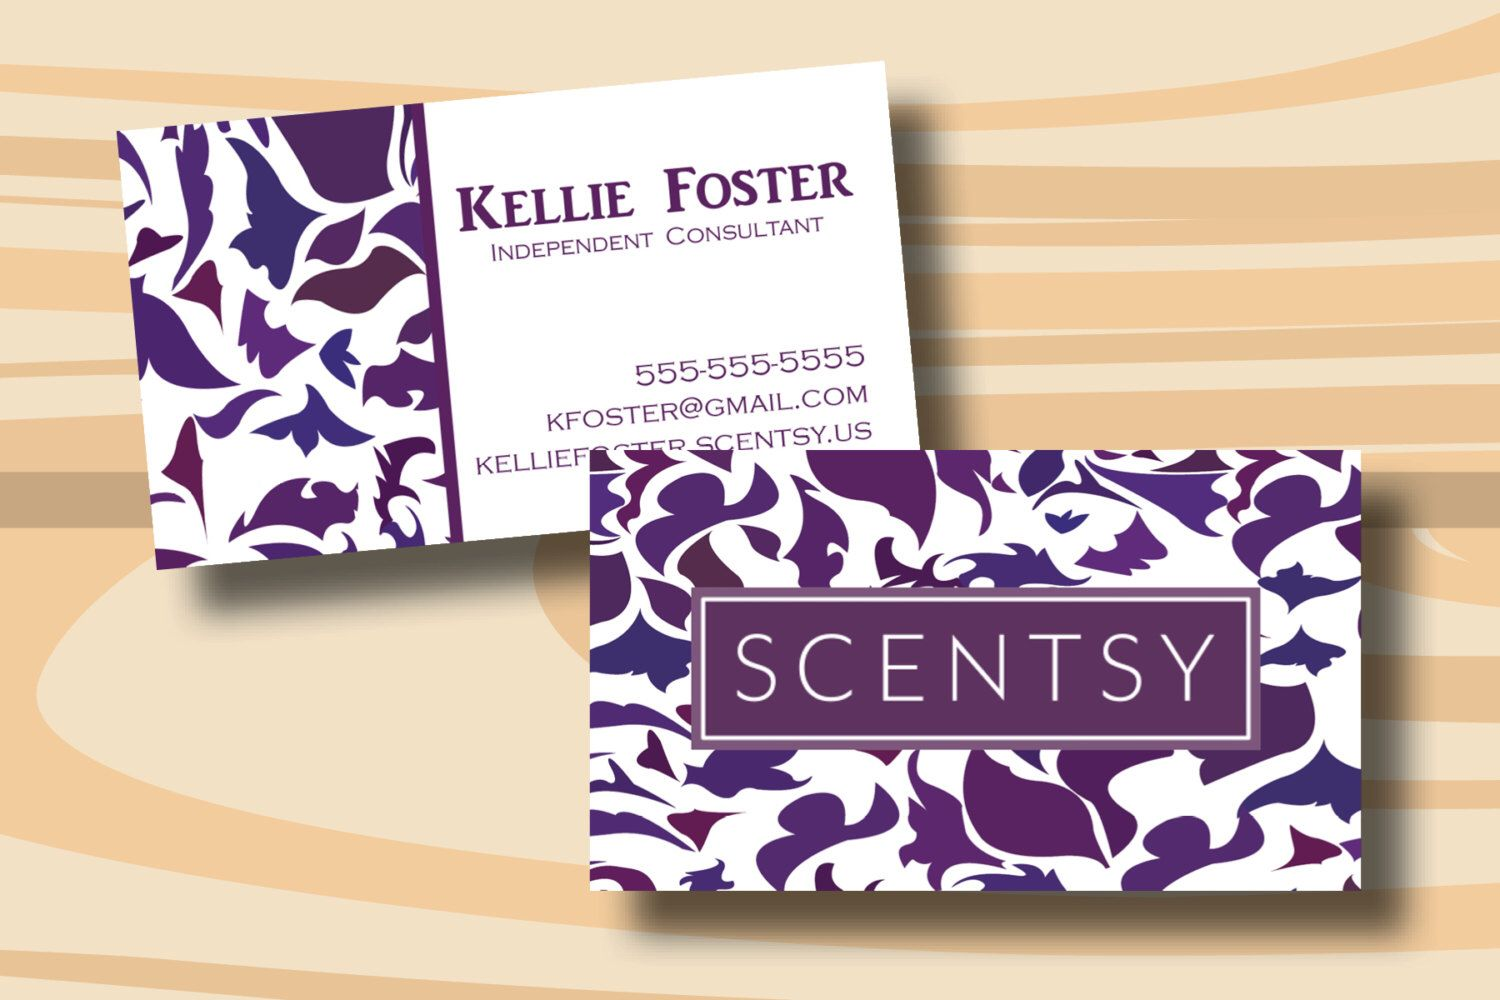 How To Make Your Own Scentsy Business Cards Image collections ...